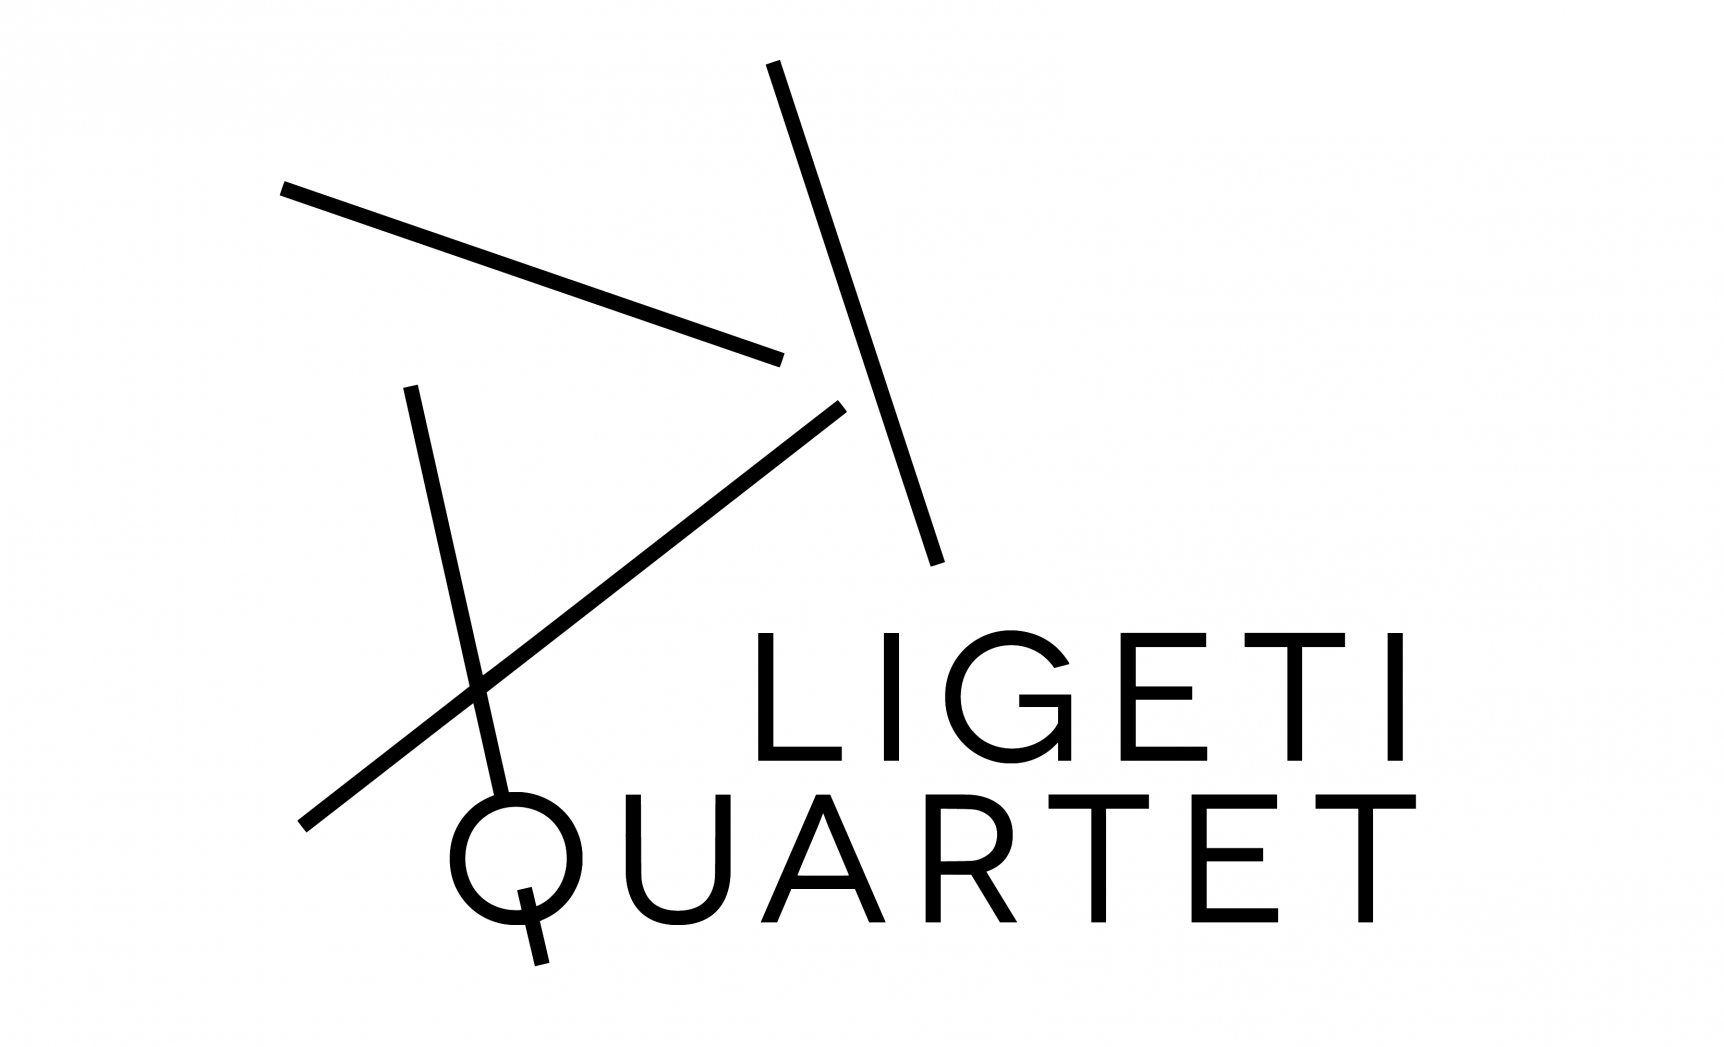 Ligeti Quartet logo (text with four intersecting lines in pattern top left)